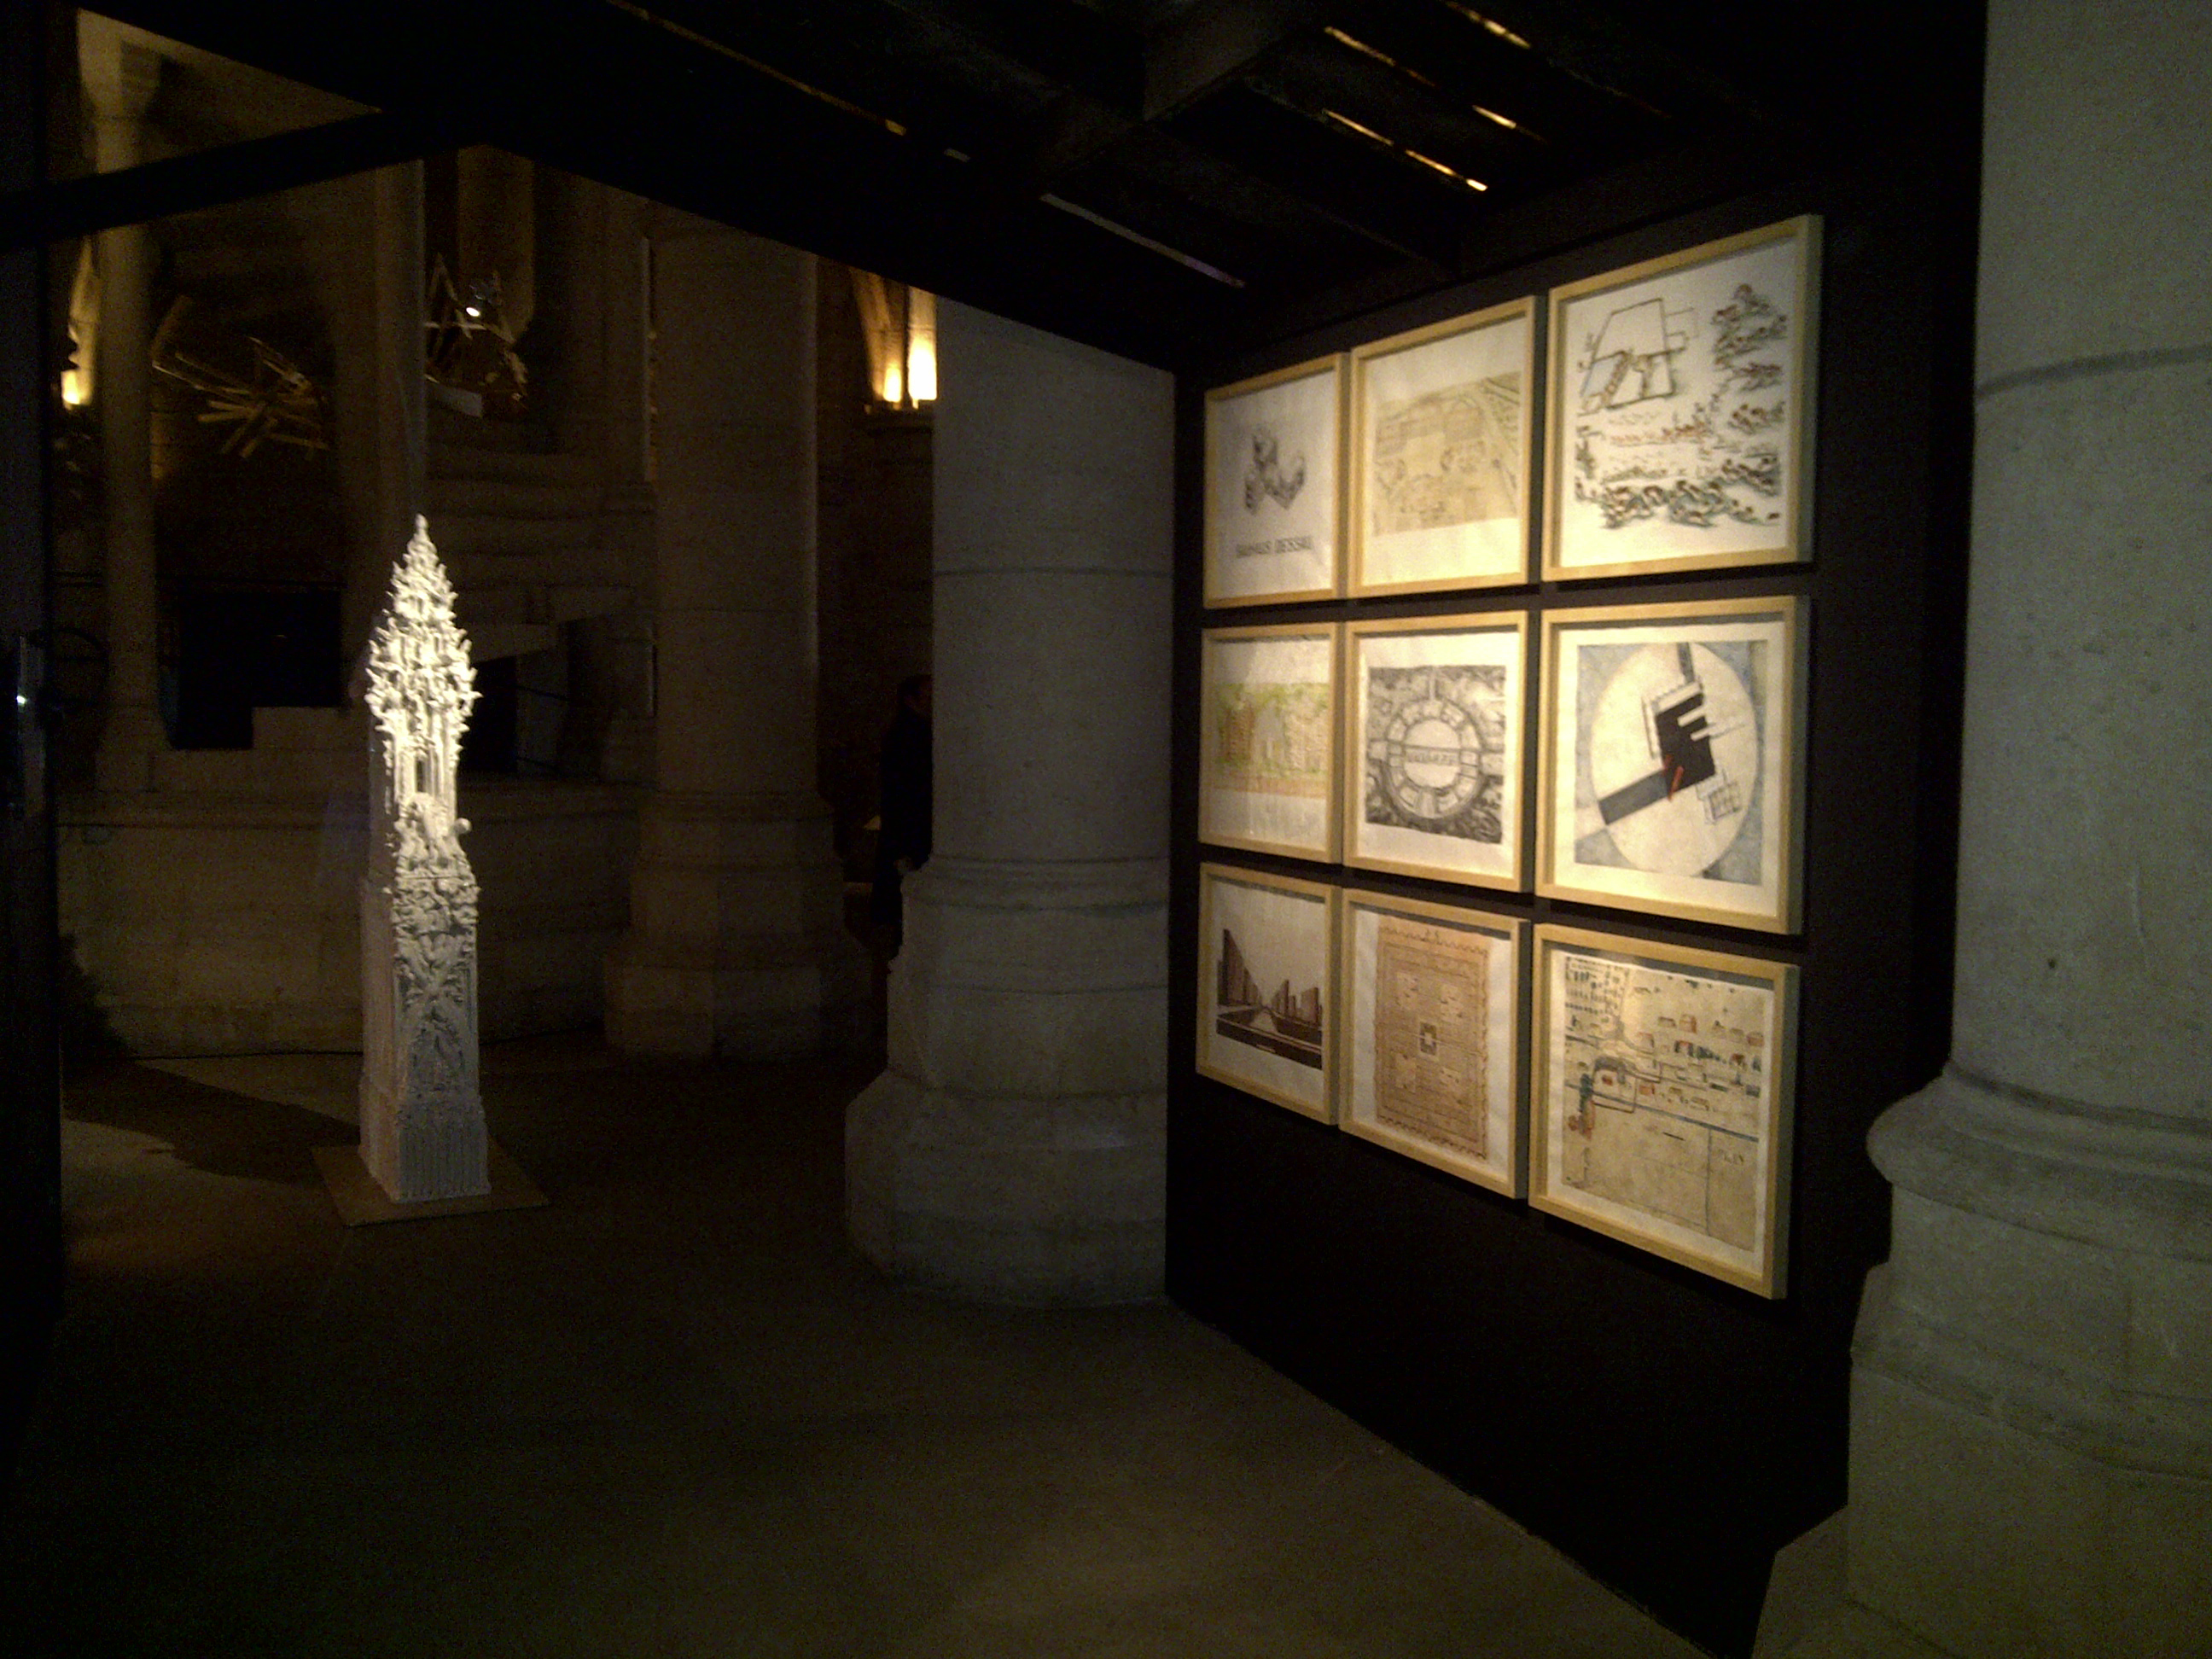 LaureTixier_Exposition Bêtes-Off, Conciergerie, Paris, 2011, commissariat Claude d'Antenaise.